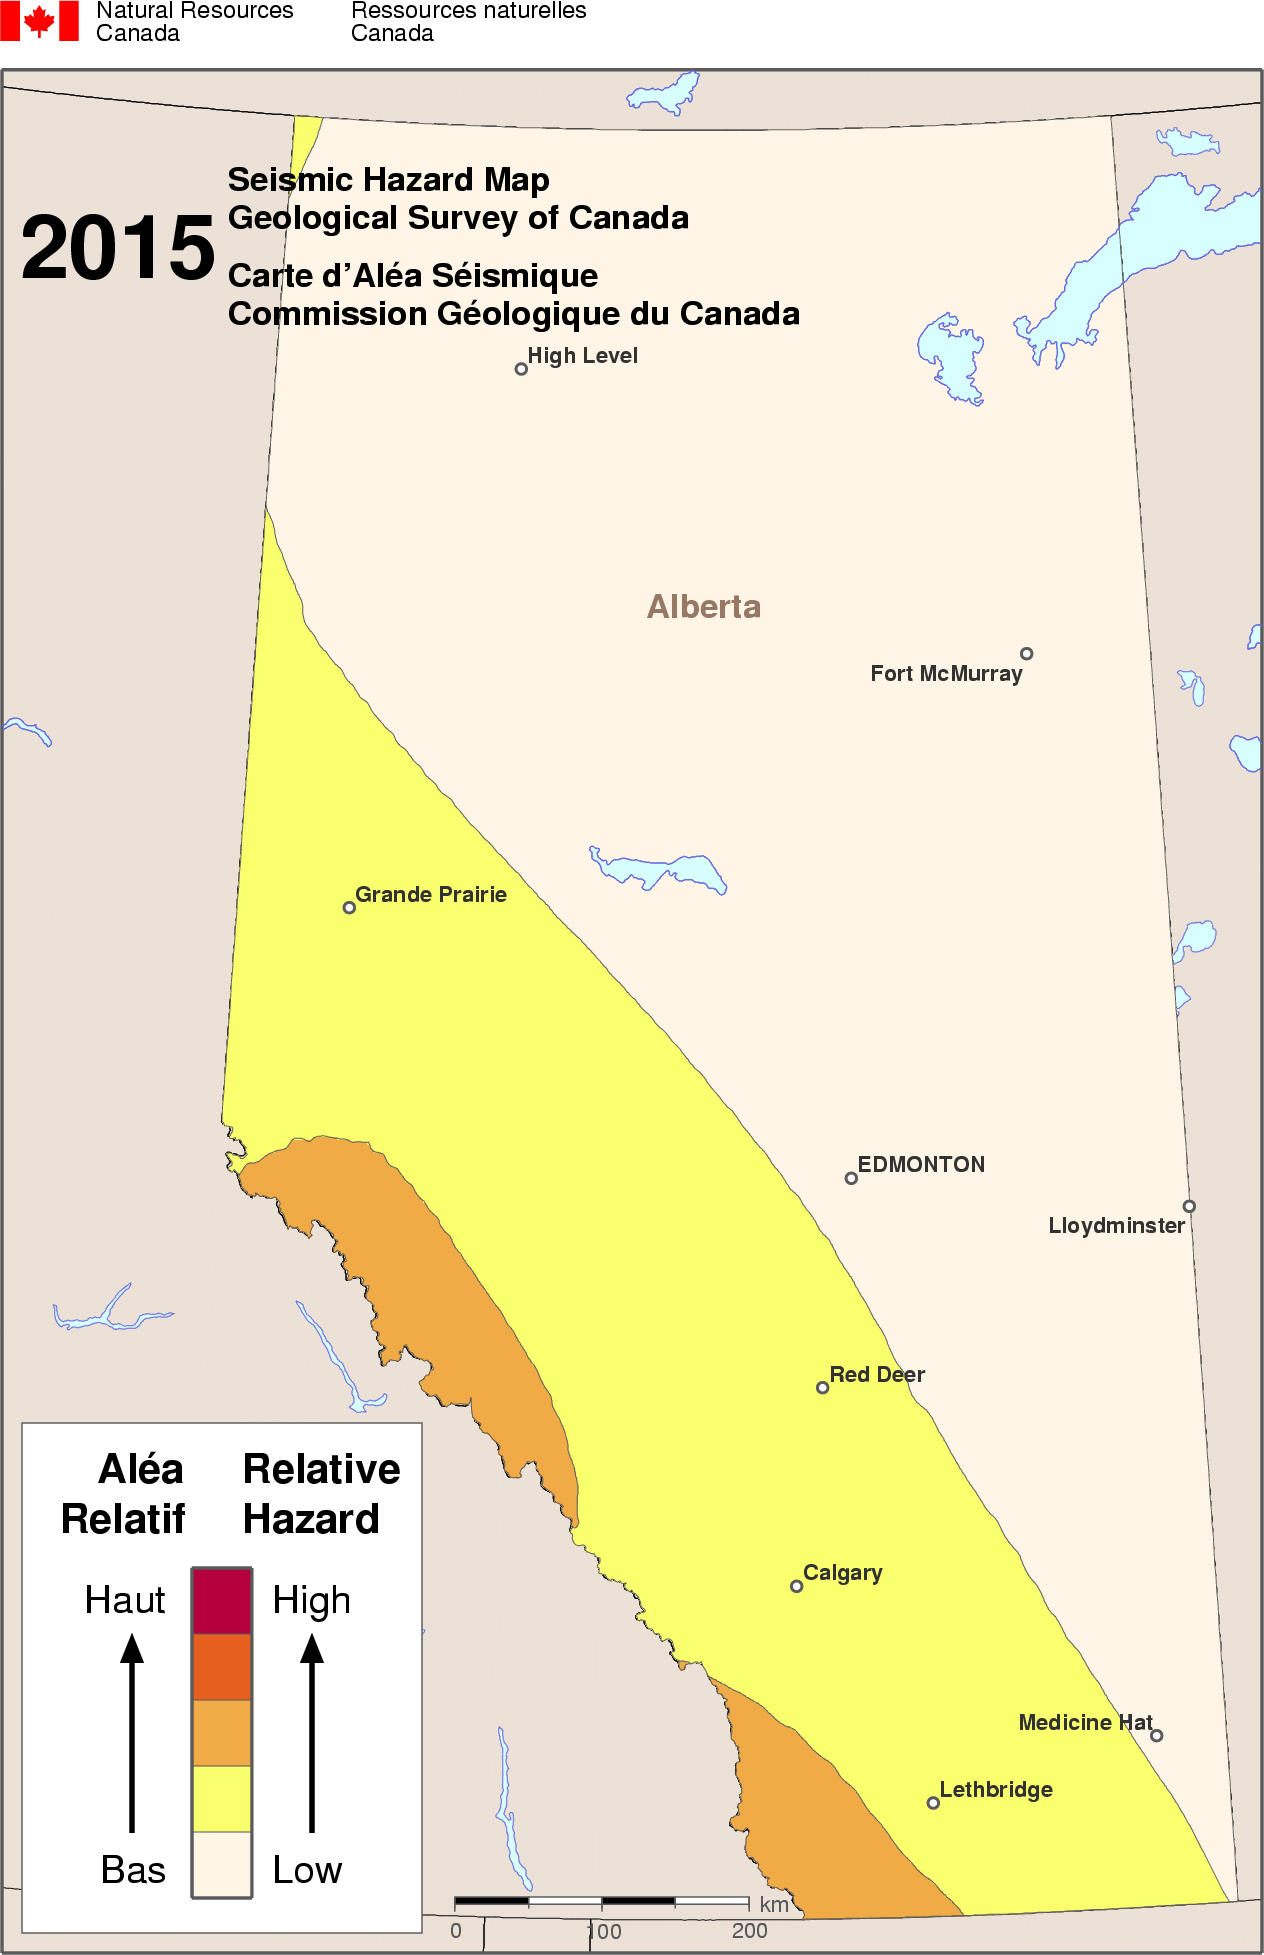 2015 NBCC seismic hazard map - AB